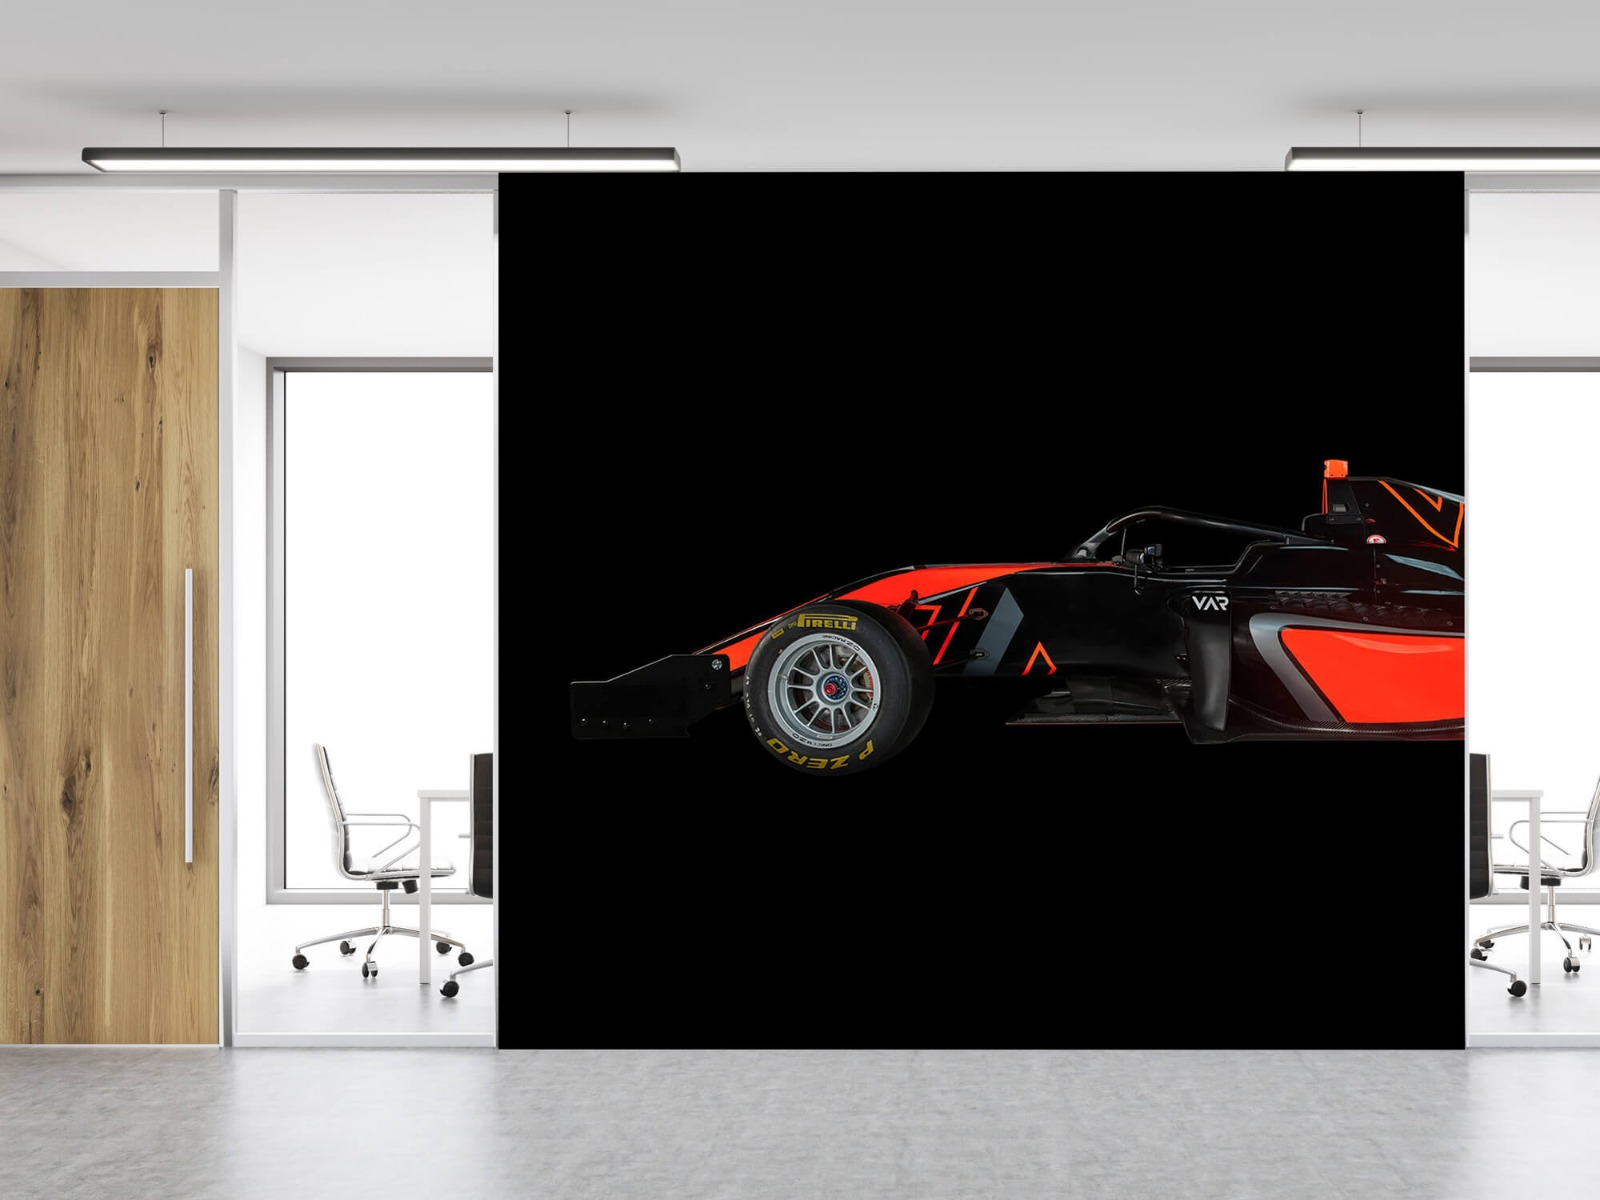 Sportauto's - Formule 3 - Lower side view - dark - Tienerkamer 12